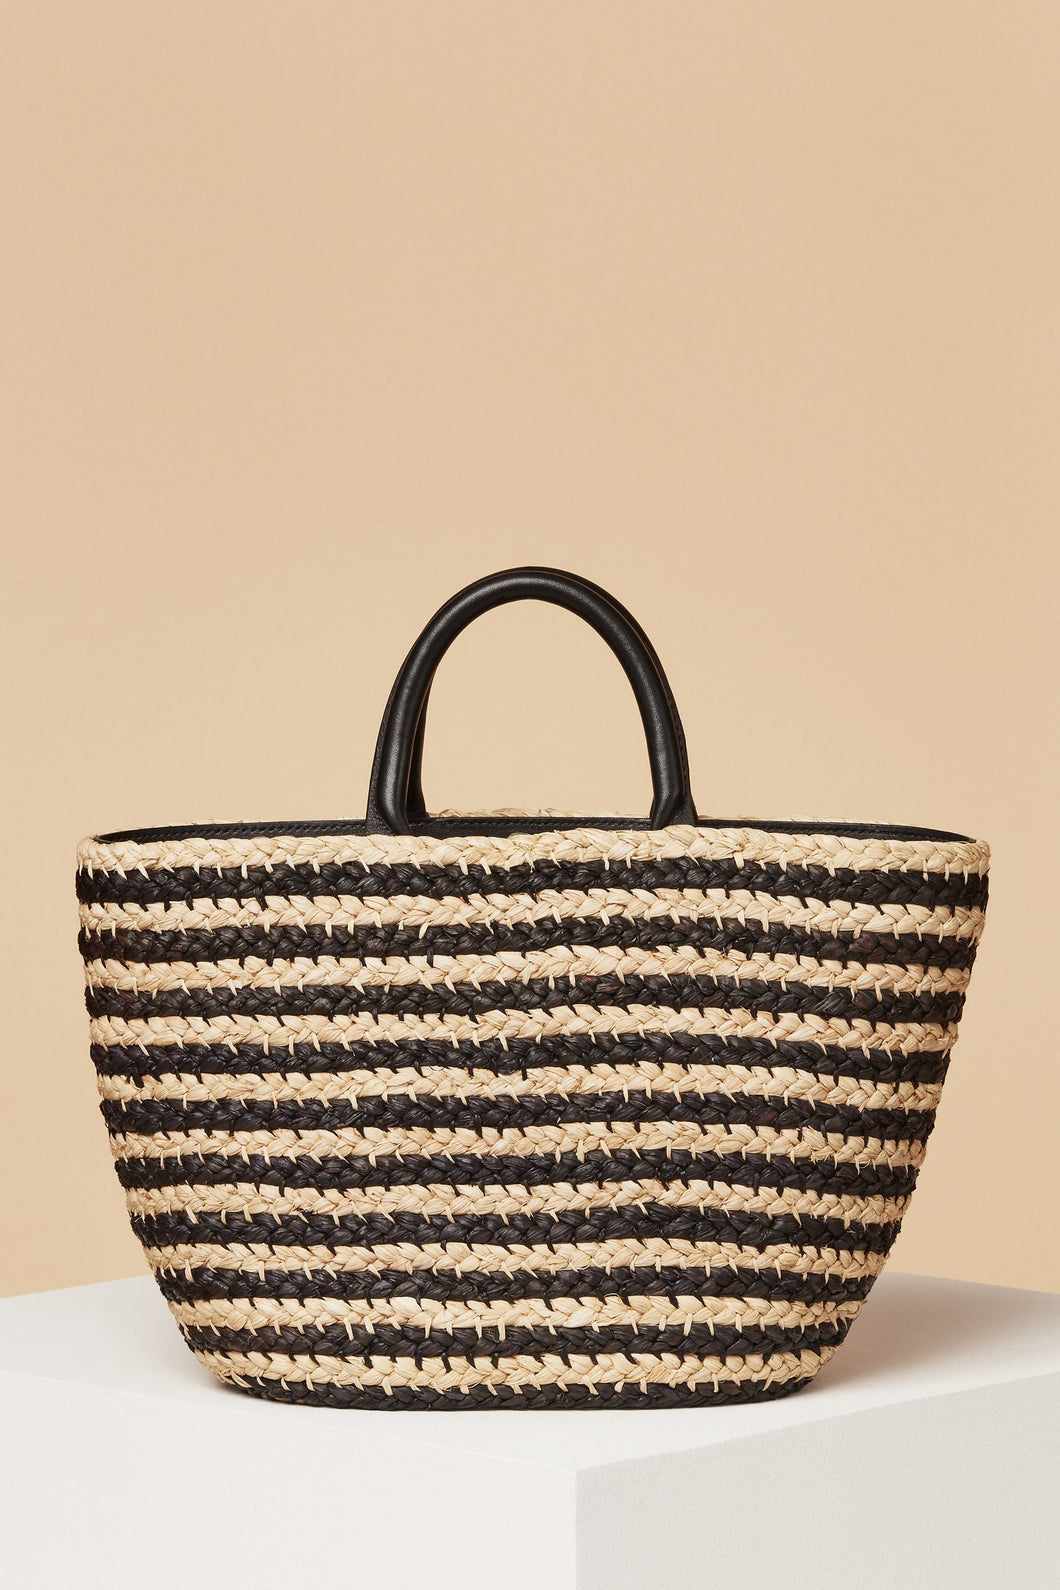 Top Handle Raffia Tote / Zebra Stripe